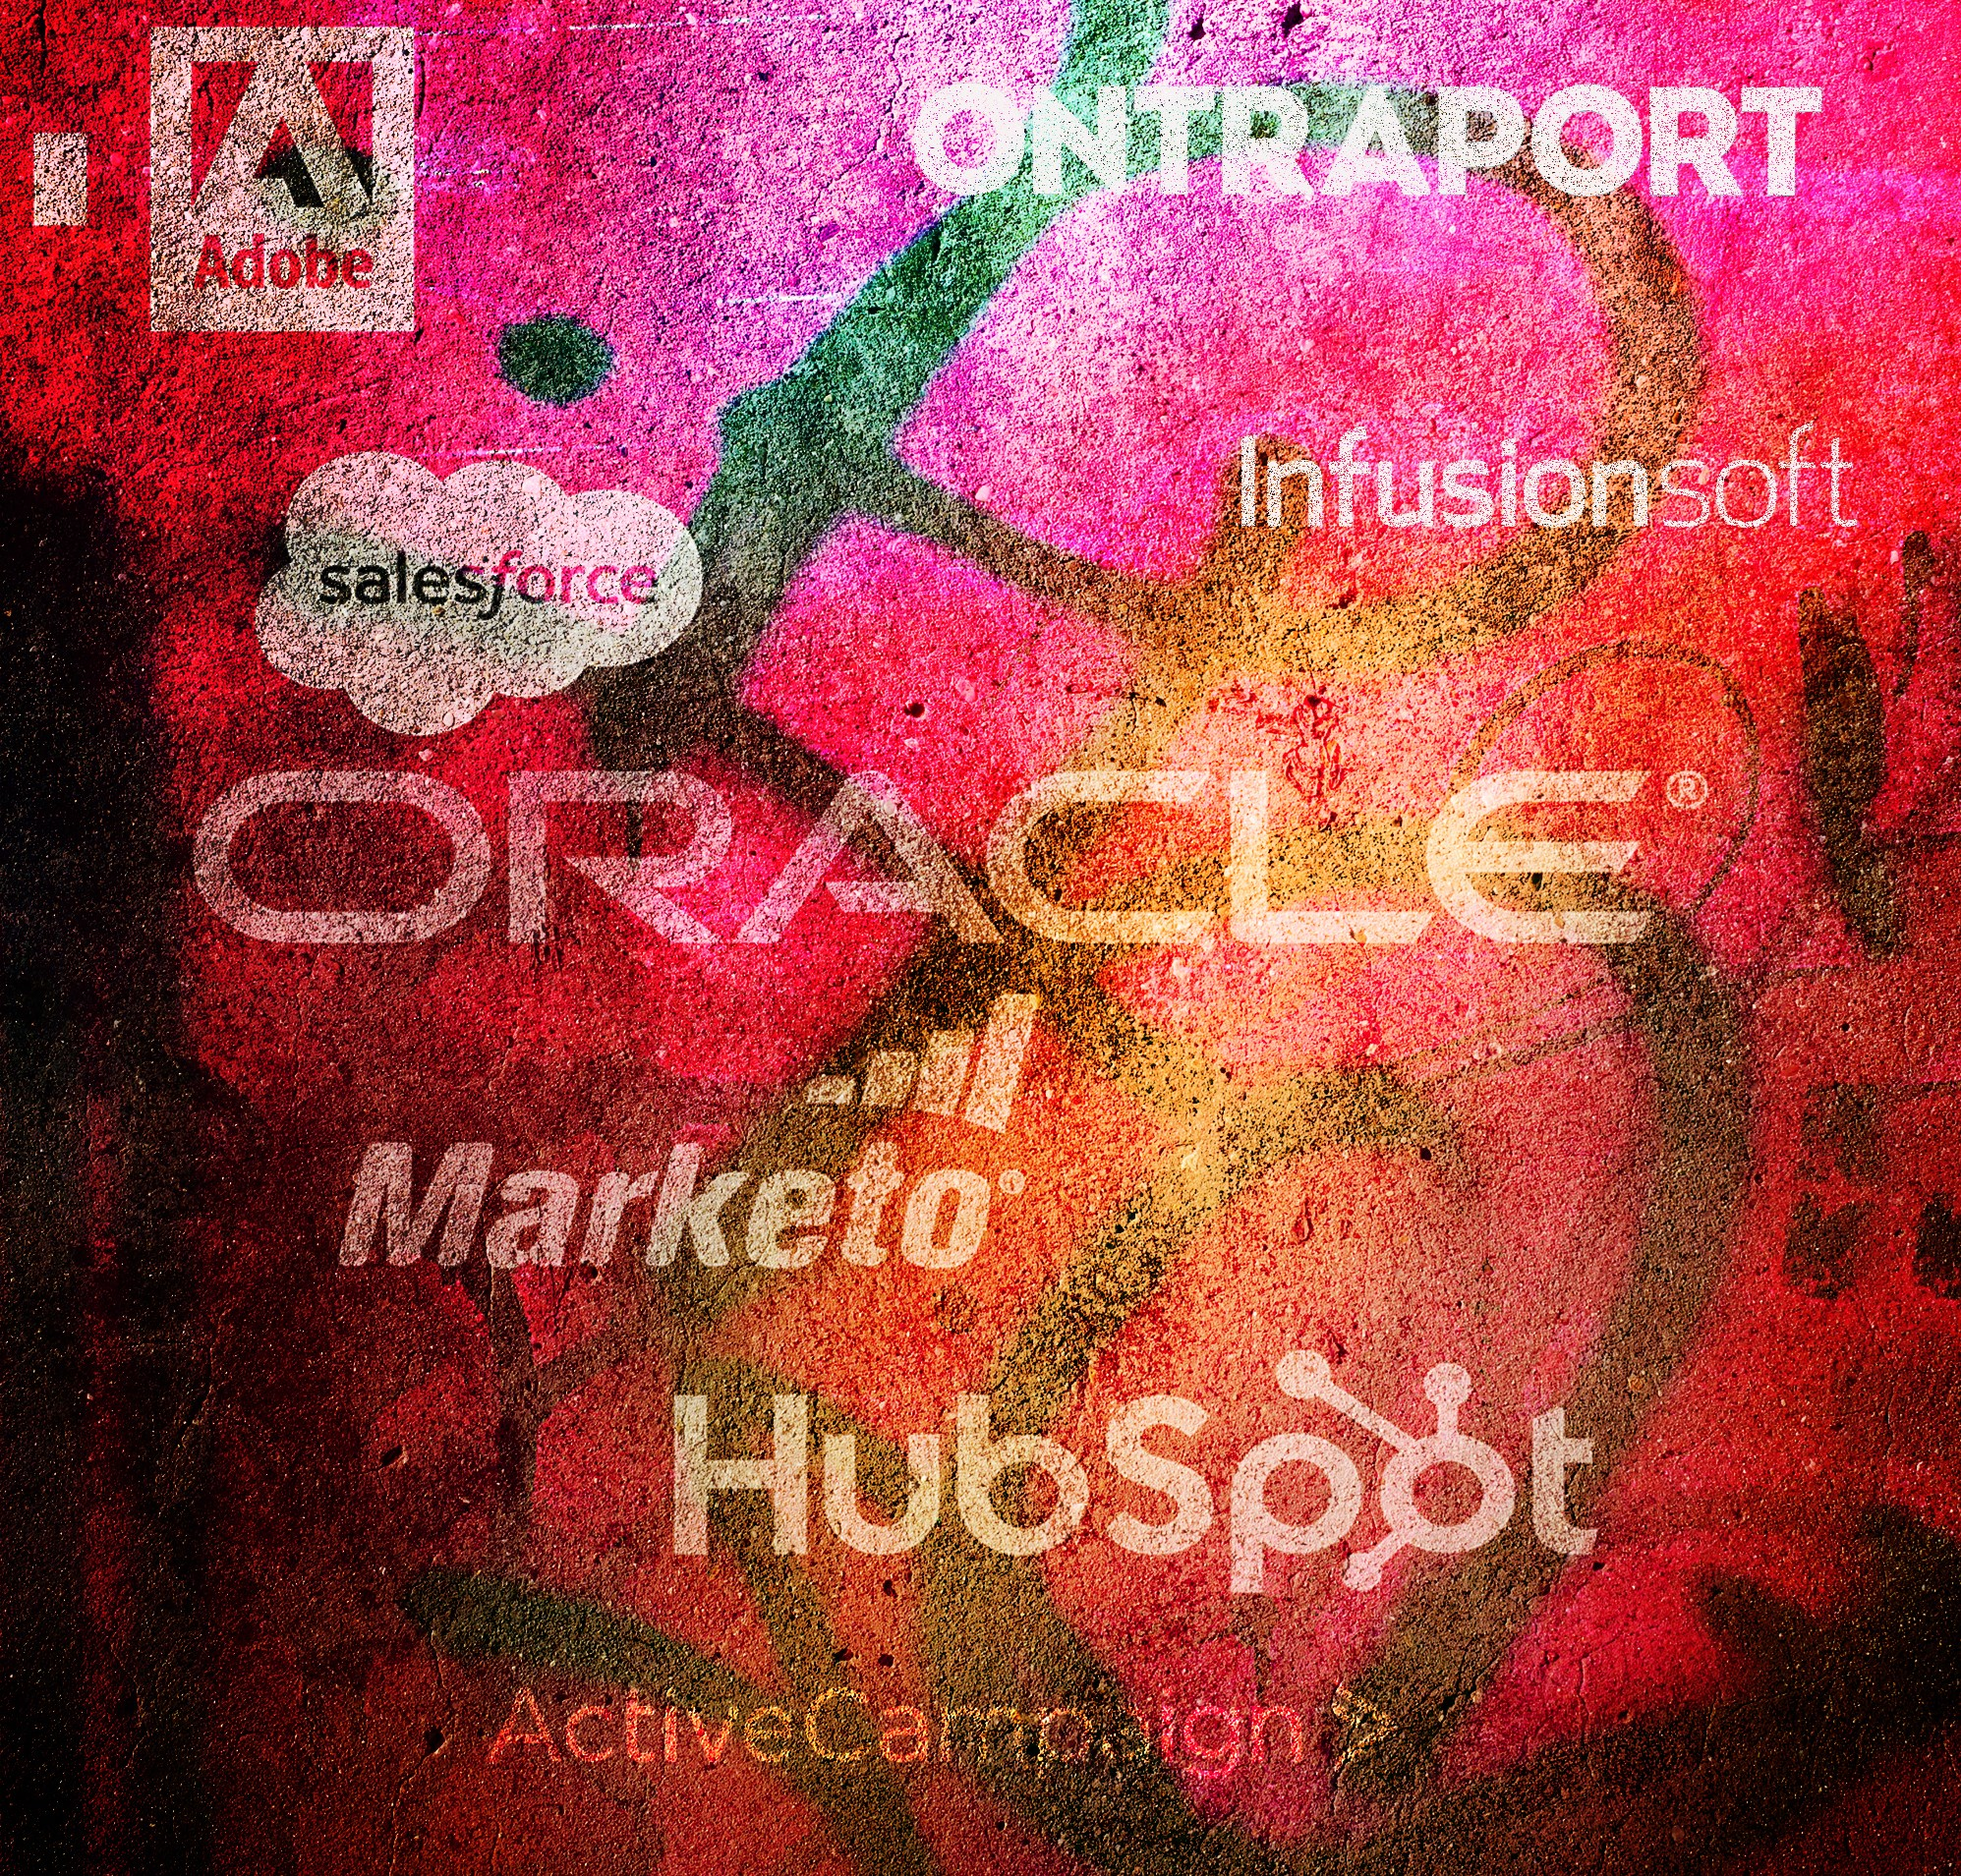 adobe, ontraport, salesforce, infusionsoft, oracle, marketo, hubspot, activecampaign